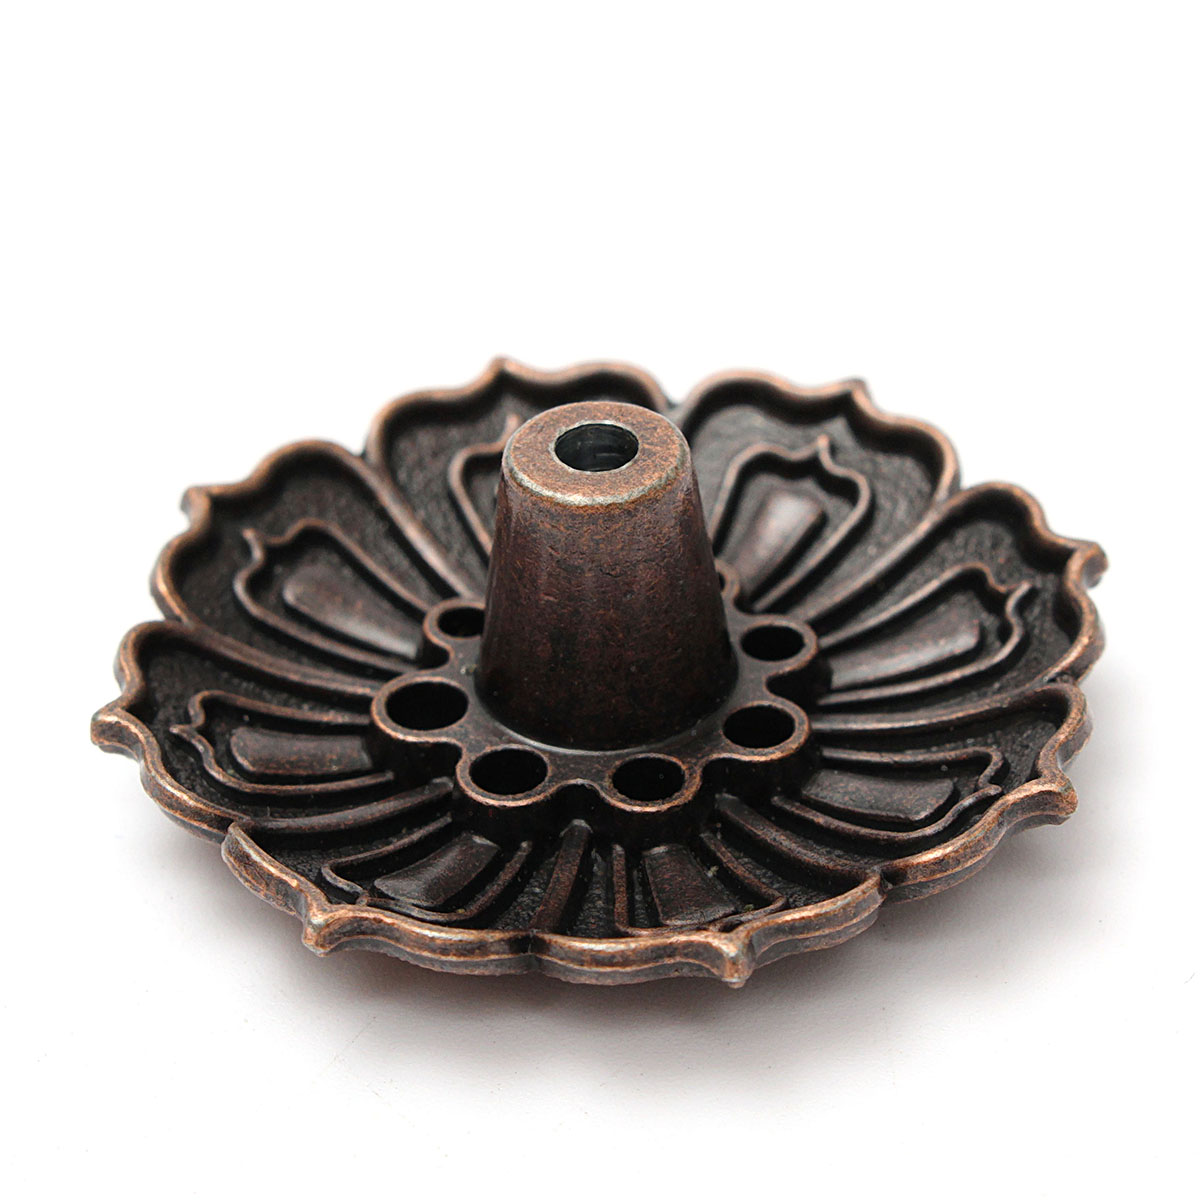 9 Holes Alloy Lotus Flower Incense Burner Holder Plate